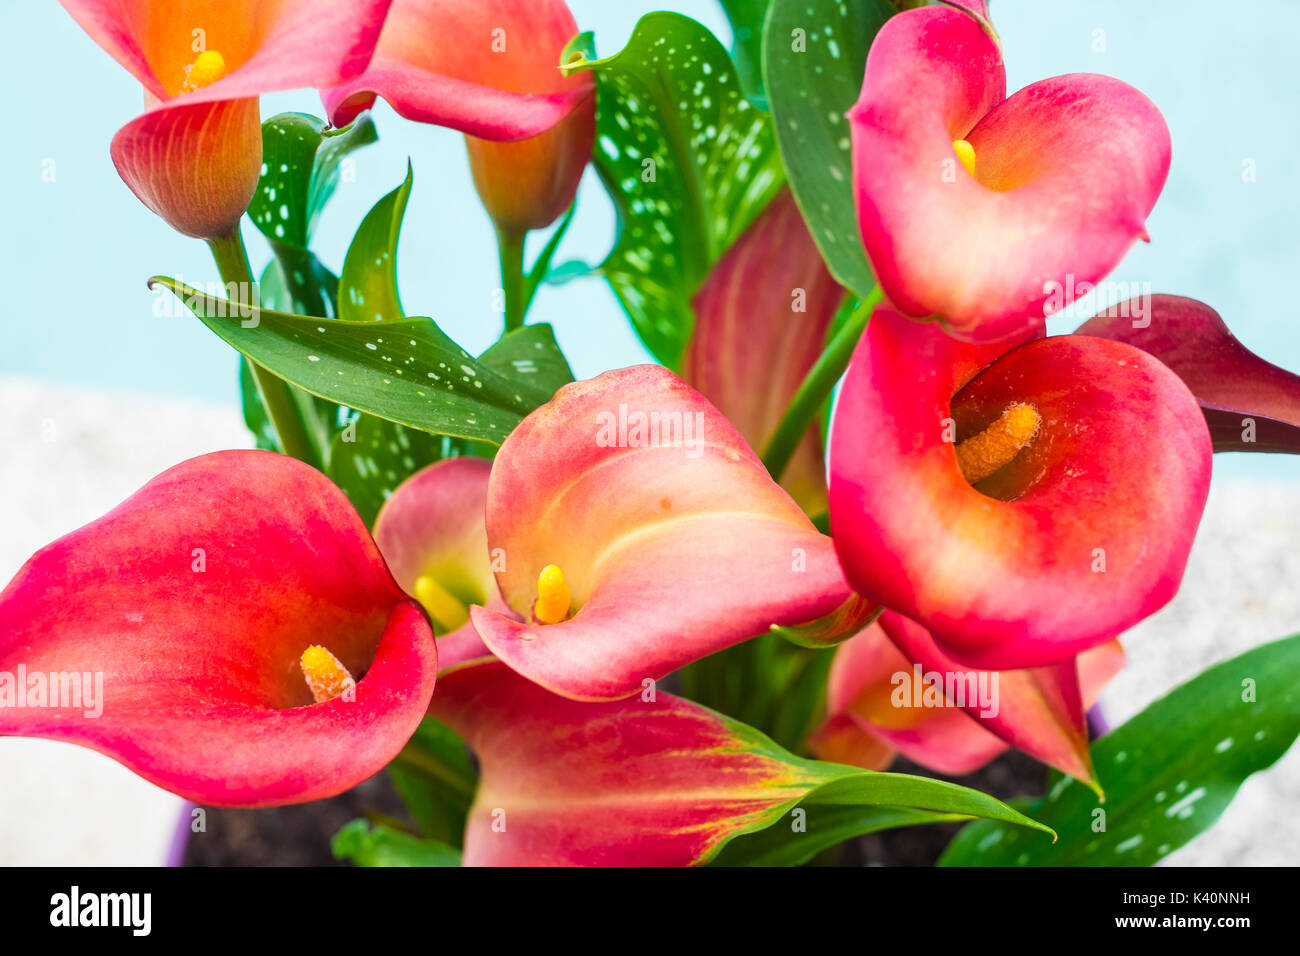 Red calla lilies flowers on a flowerpot stock photo 157369005 alamy red calla lilies flowers on a flowerpot izmirmasajfo Image collections